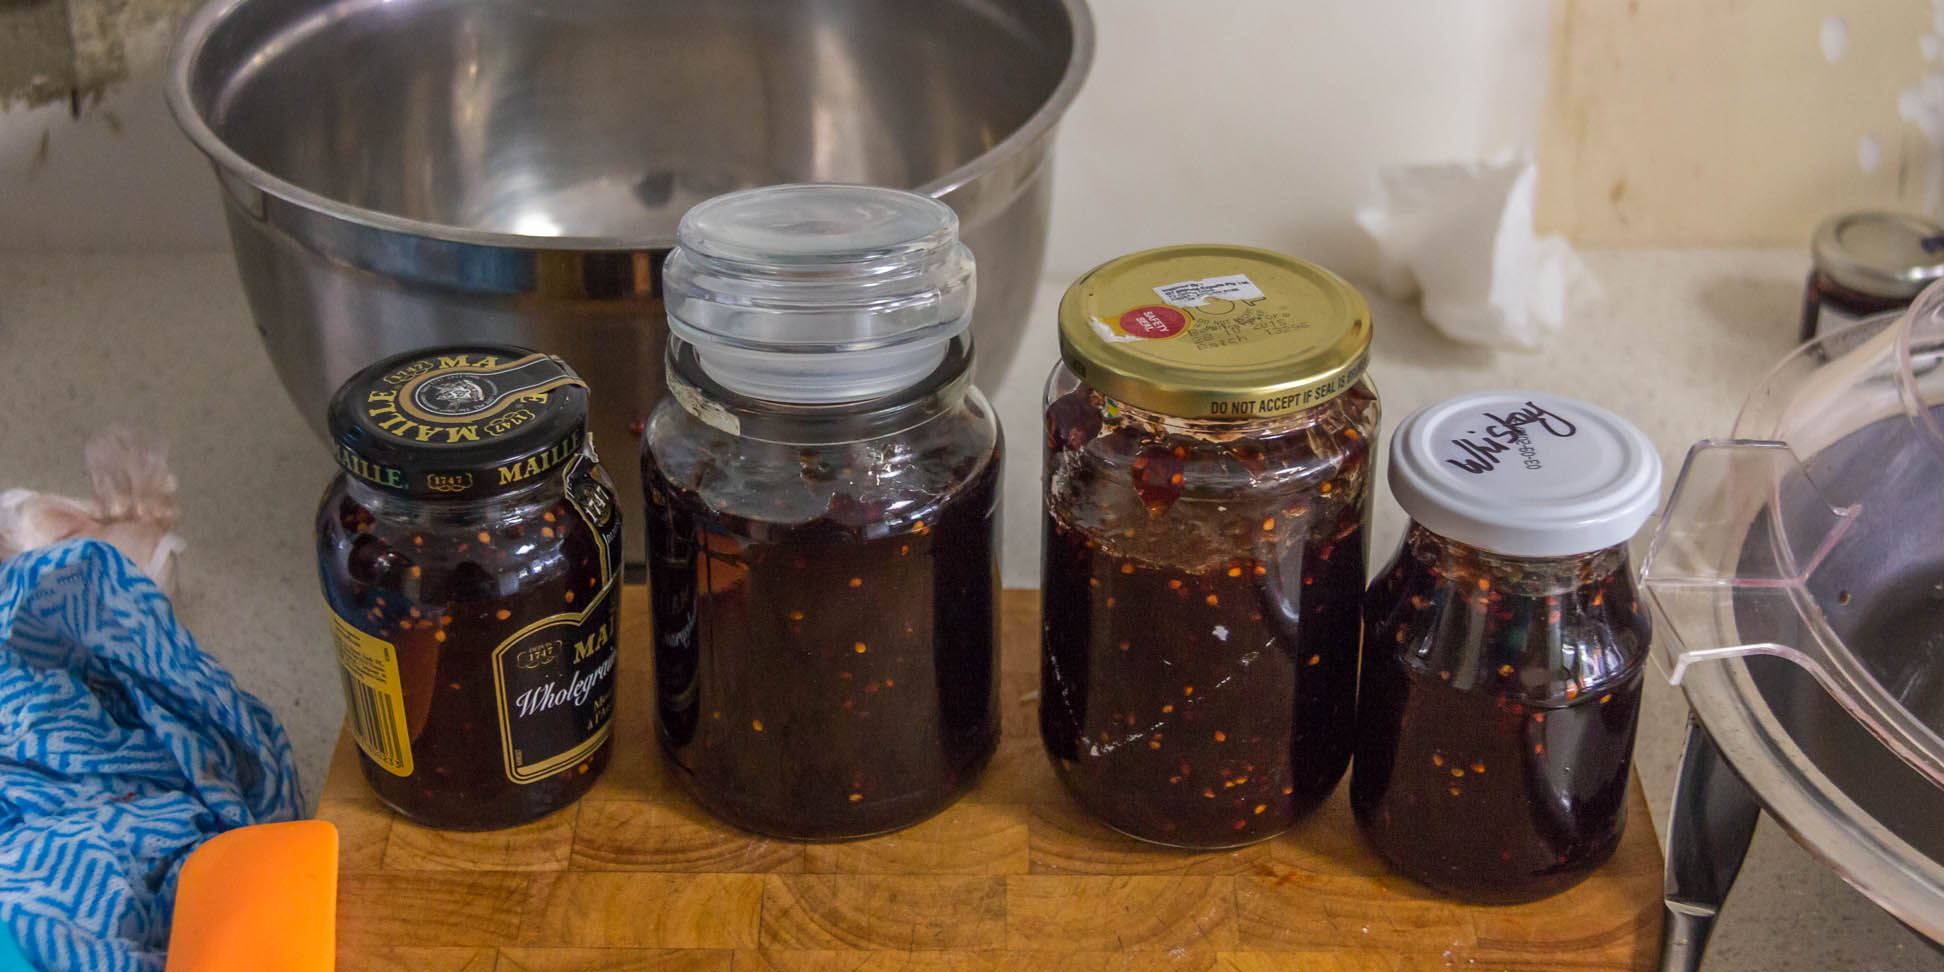 4 jars of mulberry jam on a wooden cutting board